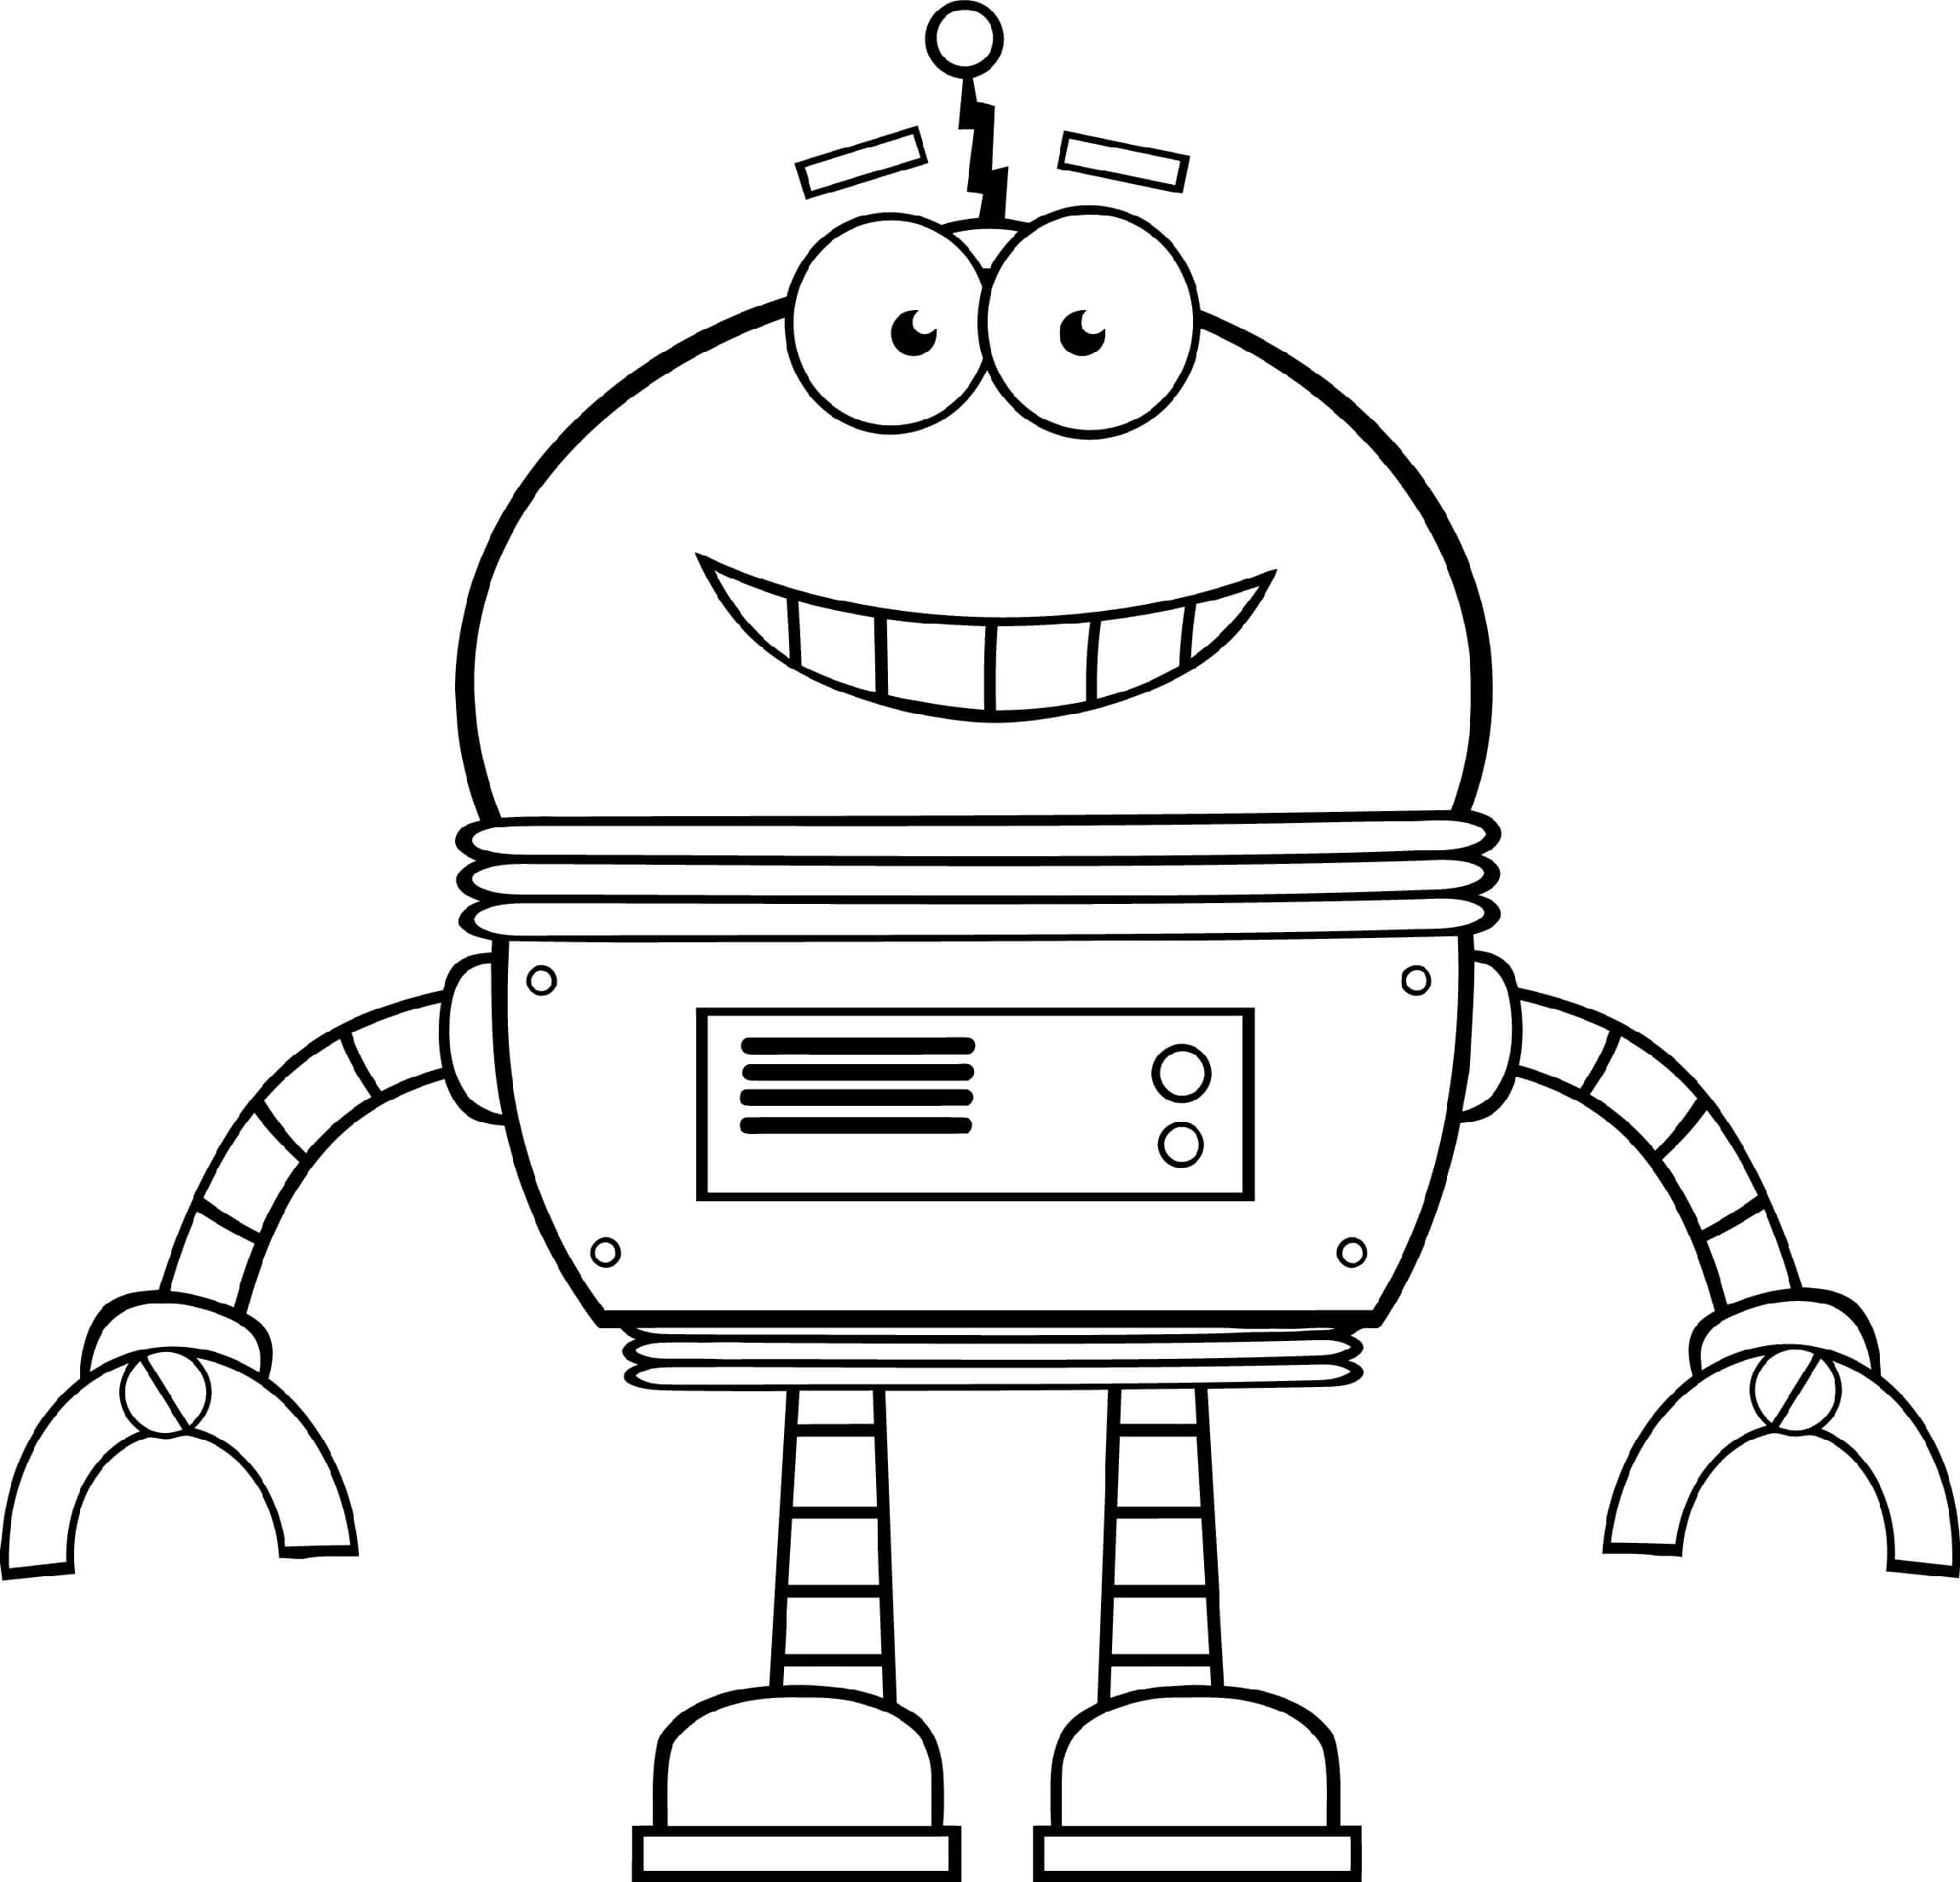 Smiling Robot Coloring Pages